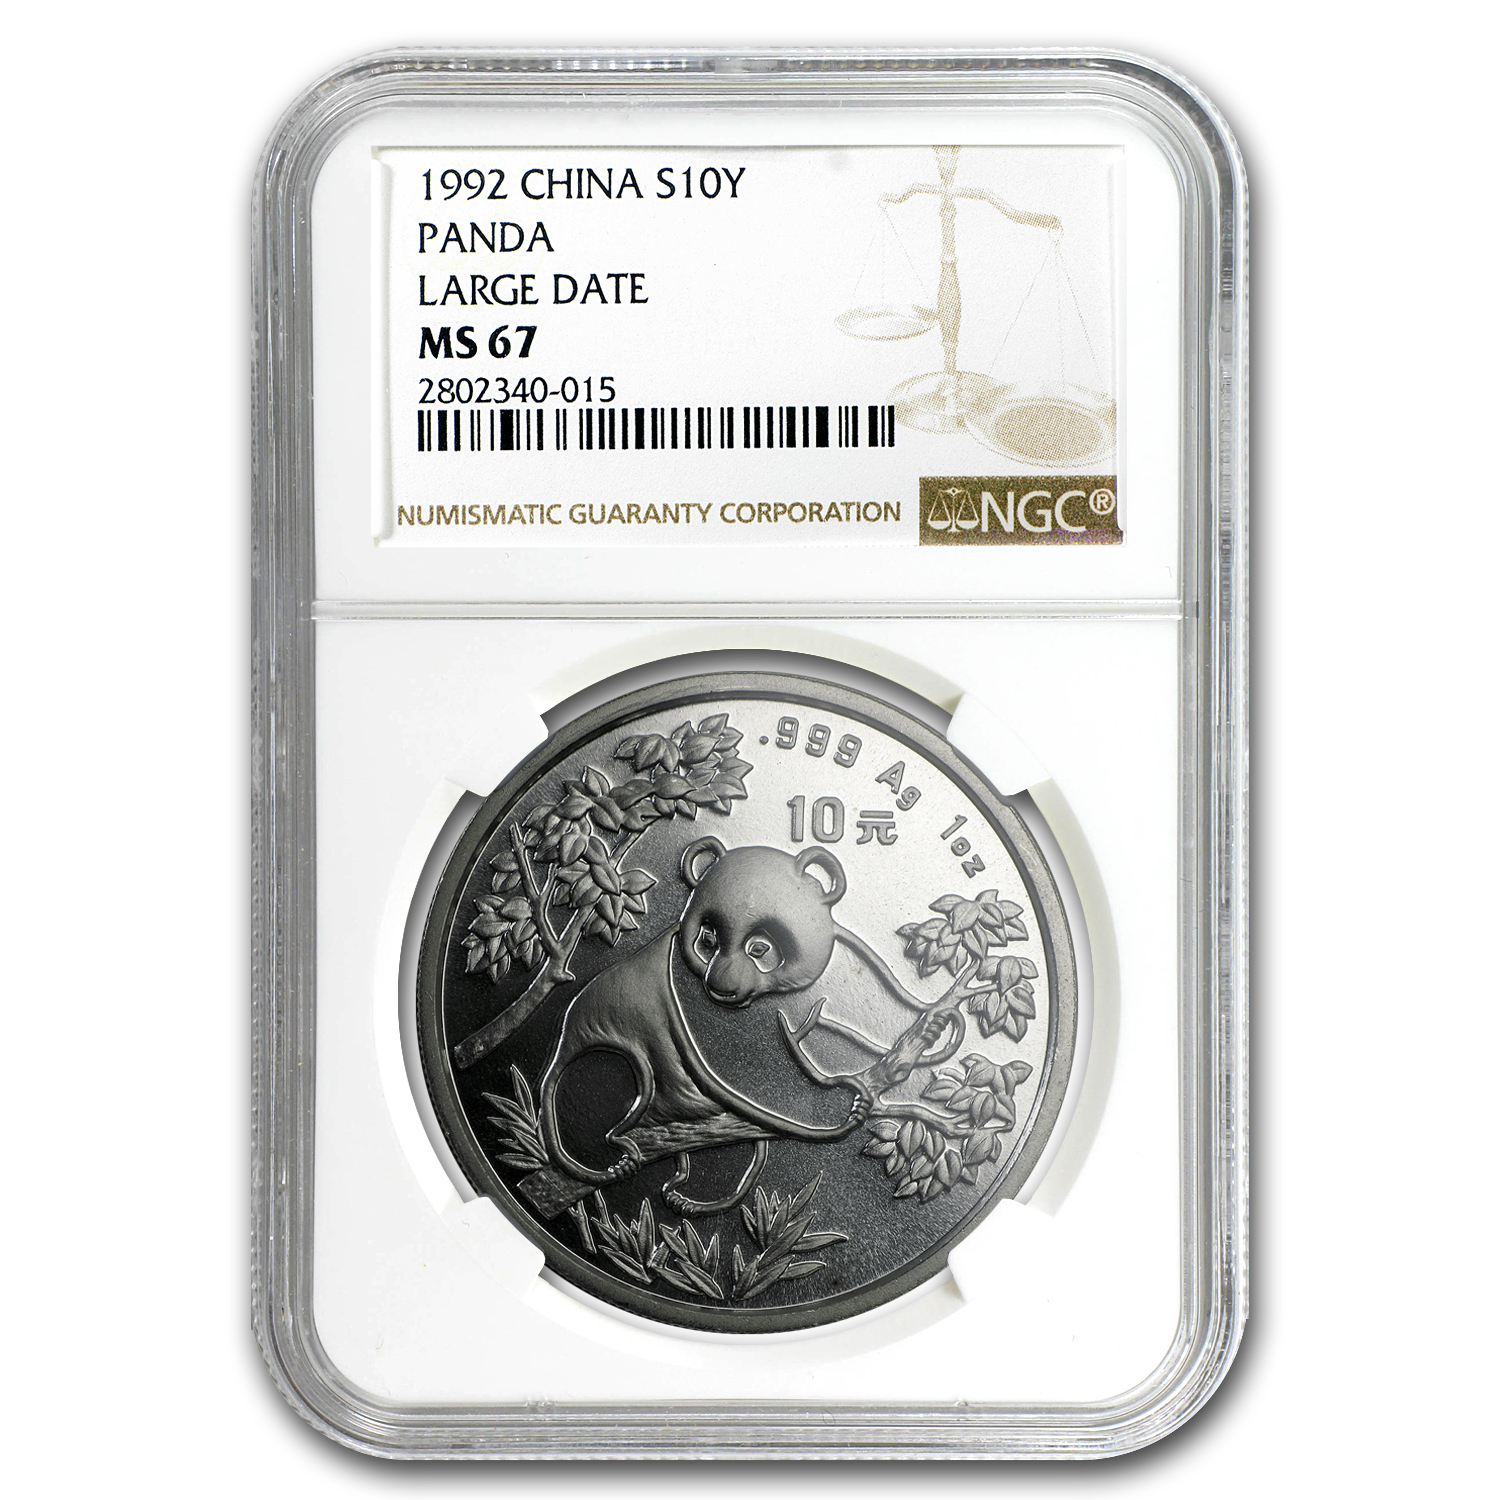 1992 China 1 oz Silver Panda MS-67 NGC (Large Date)